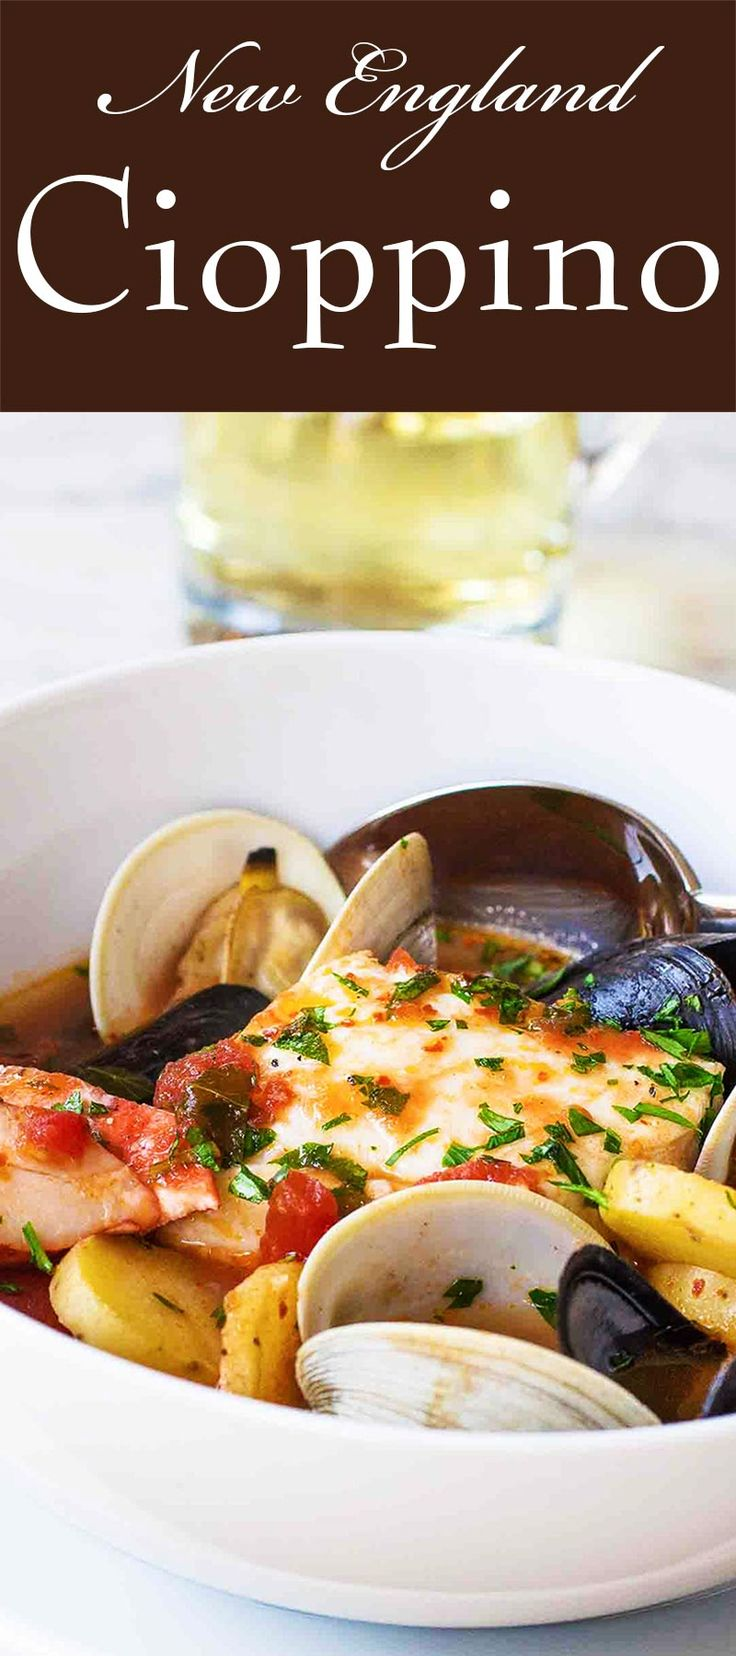 Seafood Dinner Party Ideas Part - 34: Great Casual Dinner Party Idea! See More. New England Cioppino Seafood Stew  With Haddock, Lobster, Clams, And Mussels. Perfect